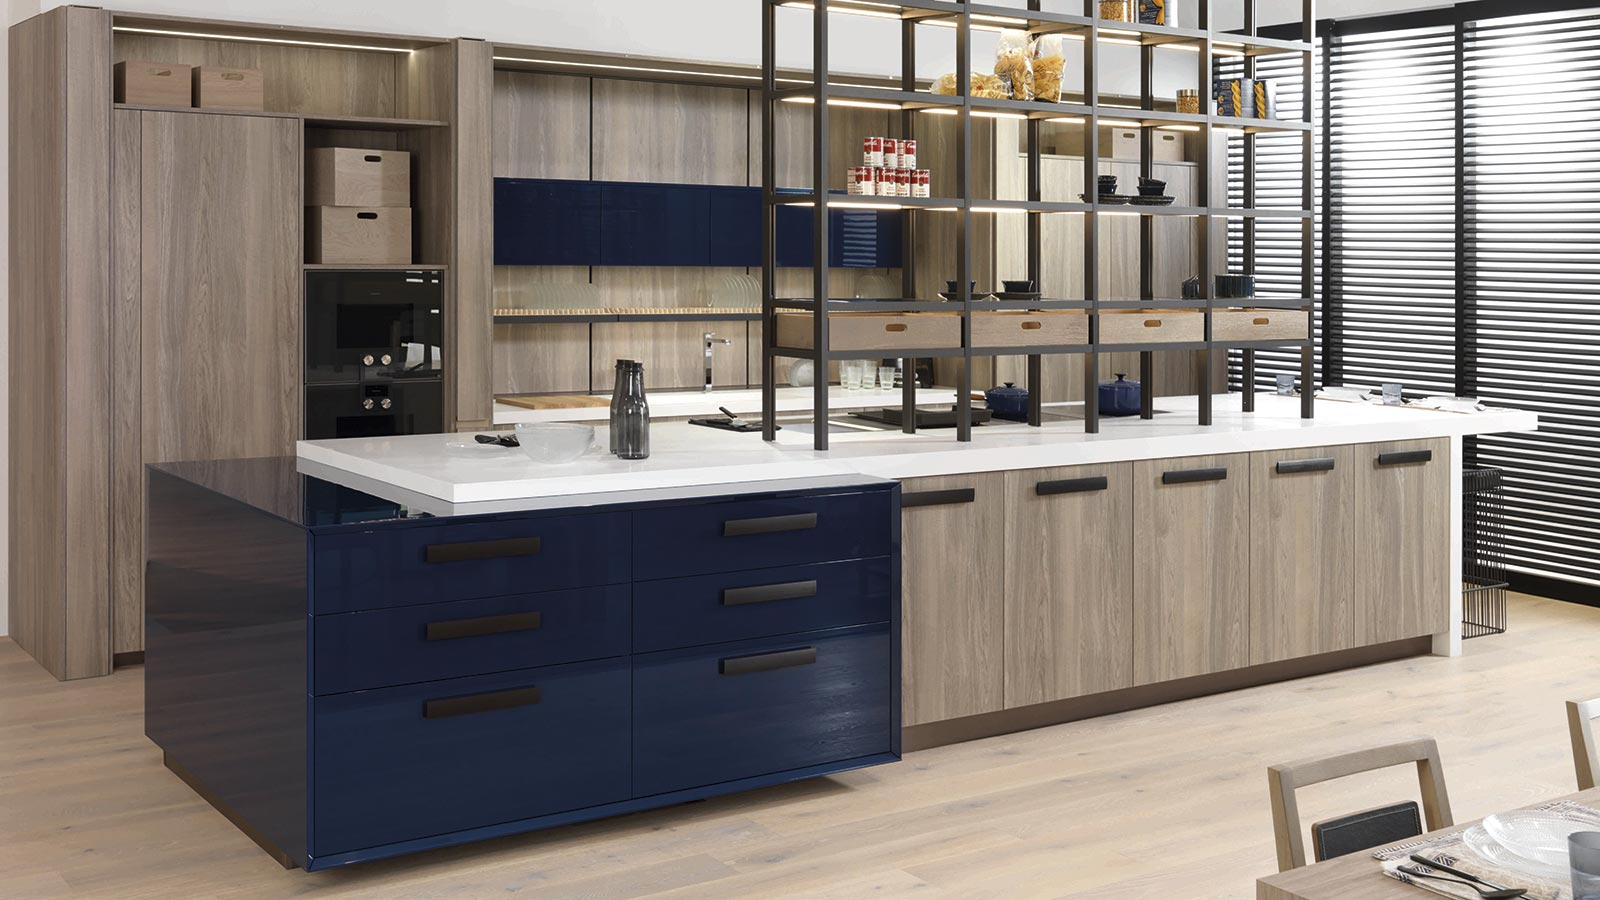 Unique kitchen islands, more surface for food prep and dining